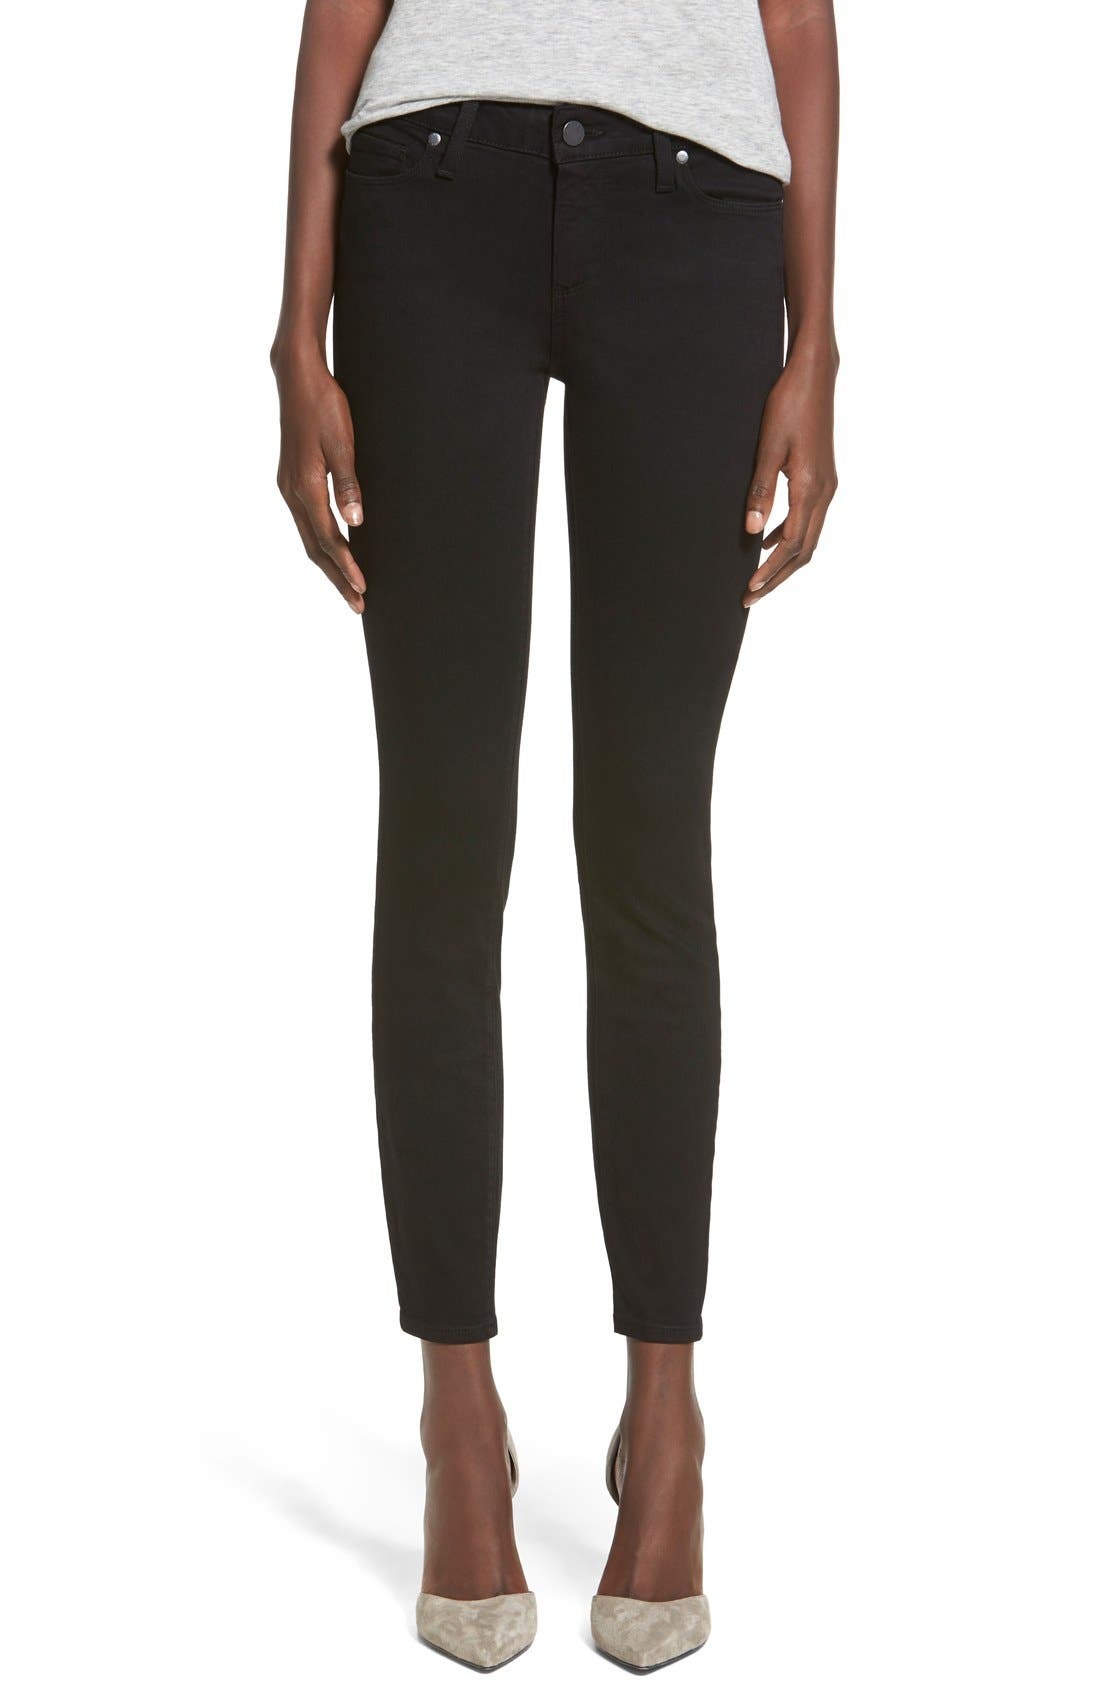 Alternate Image 1 Selected - PAIGE Transcend - Verdugo Ankle Ultra Skinny Jeans (Black Shadow)